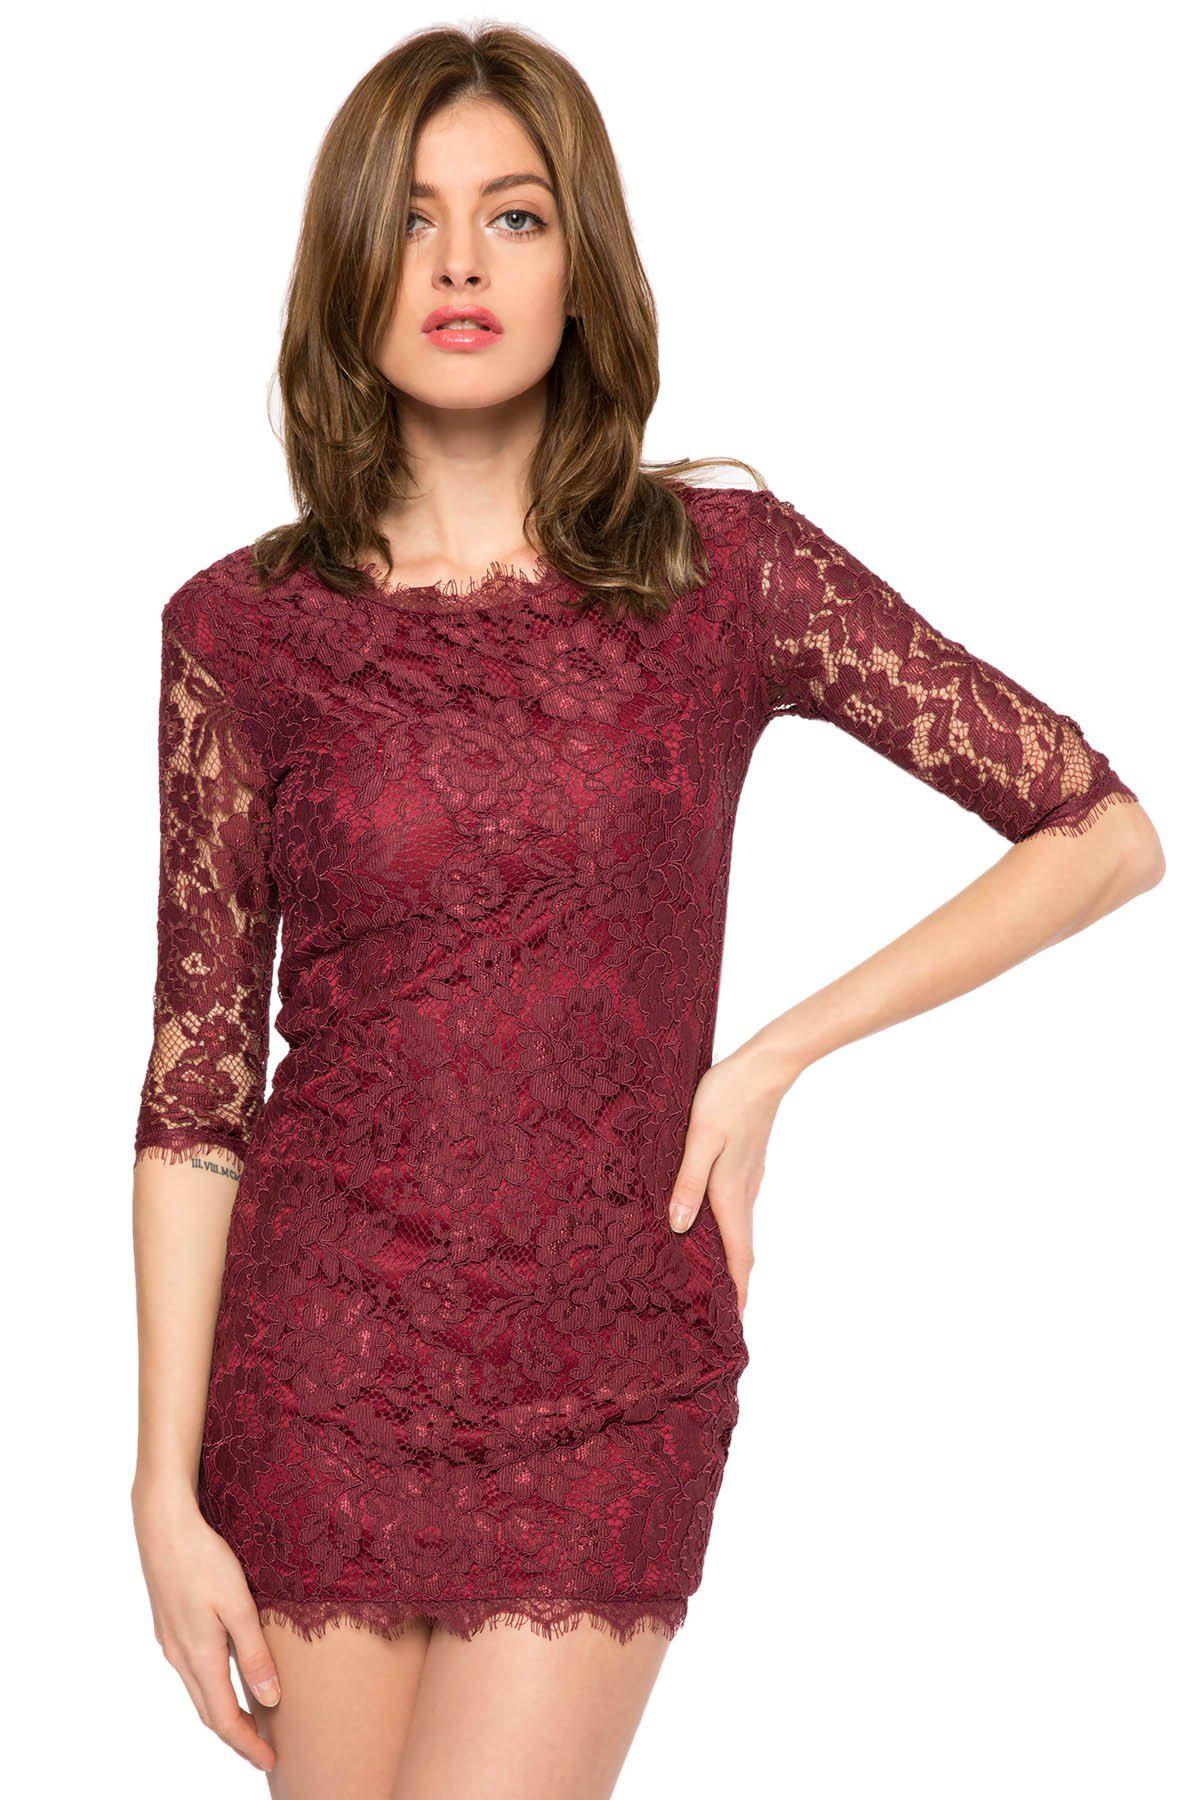 Trendy Style Scoop Collar 3/4 Sleeve Solid Color Slimming Women's Lace Dress - DEEP PURPLE L